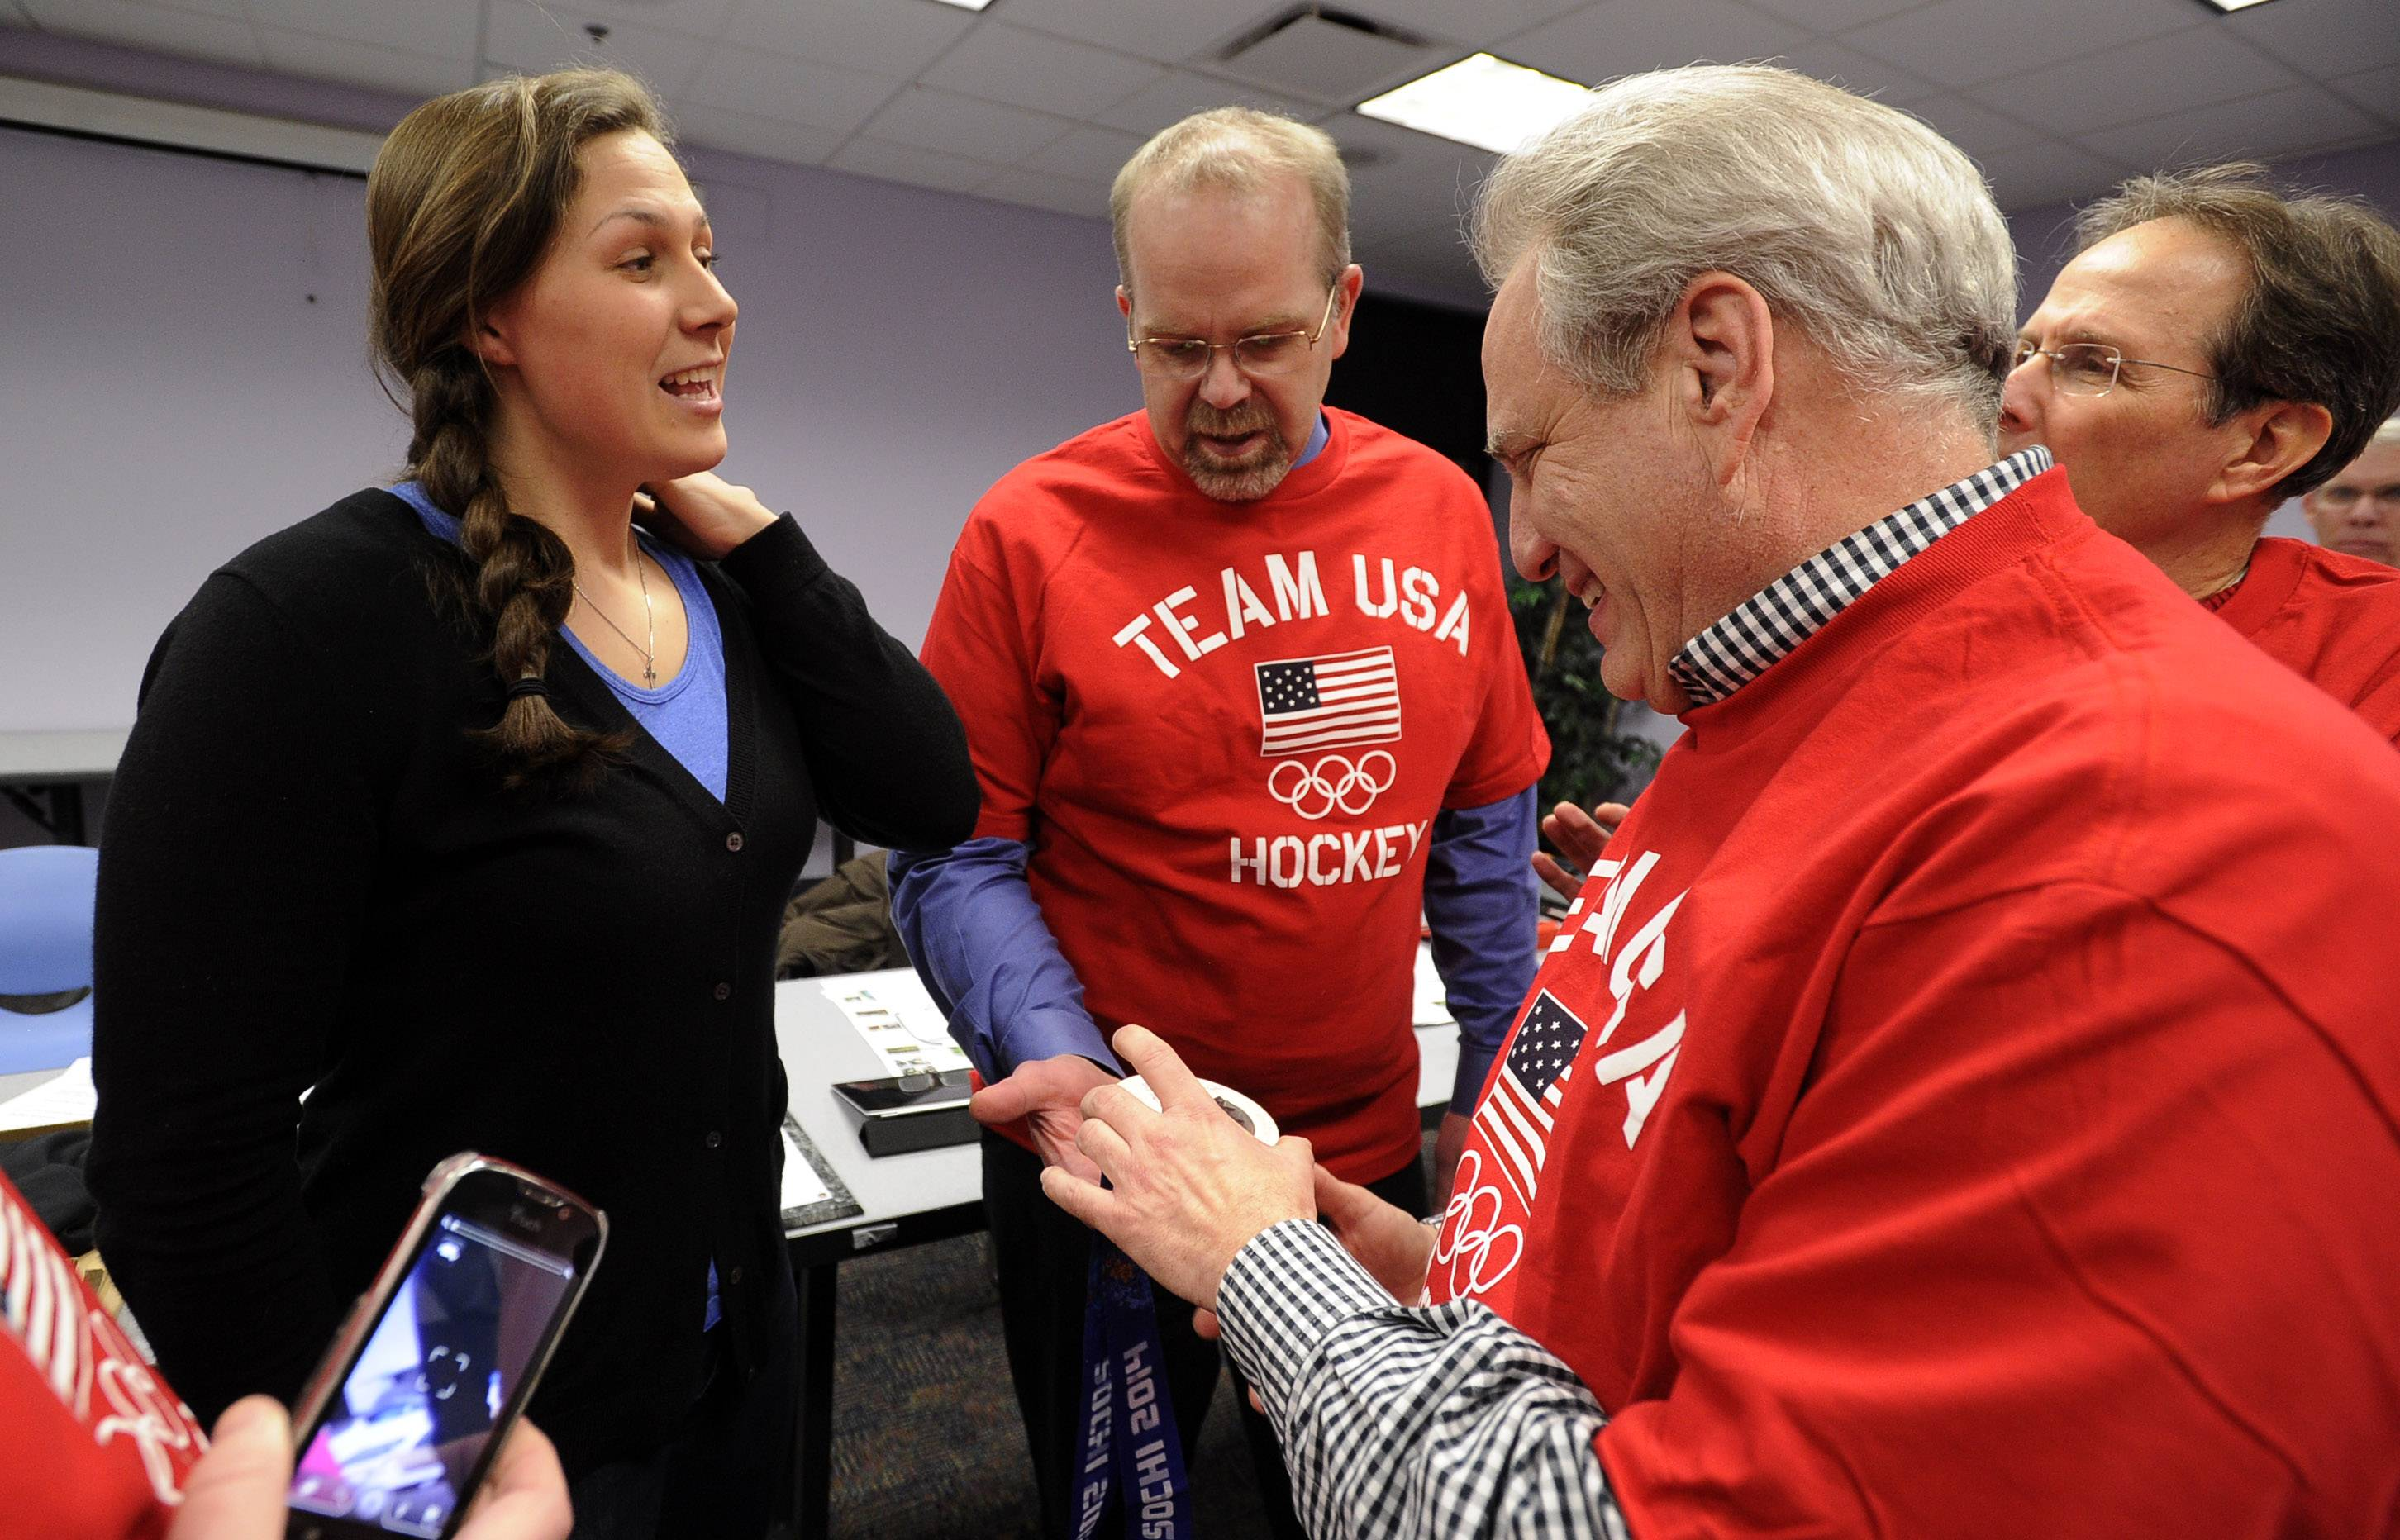 Buffalo Grove resident Megan Bozek is greeted by the members of the Buffalo Grove Park District Monday, Ryan Risinger, deputy director and Scott Jacobson, vice president on the district board where she proudly displayed her silver medal she won for the Winter Olympics hockey team in Sochi. She was honored for her achievements.